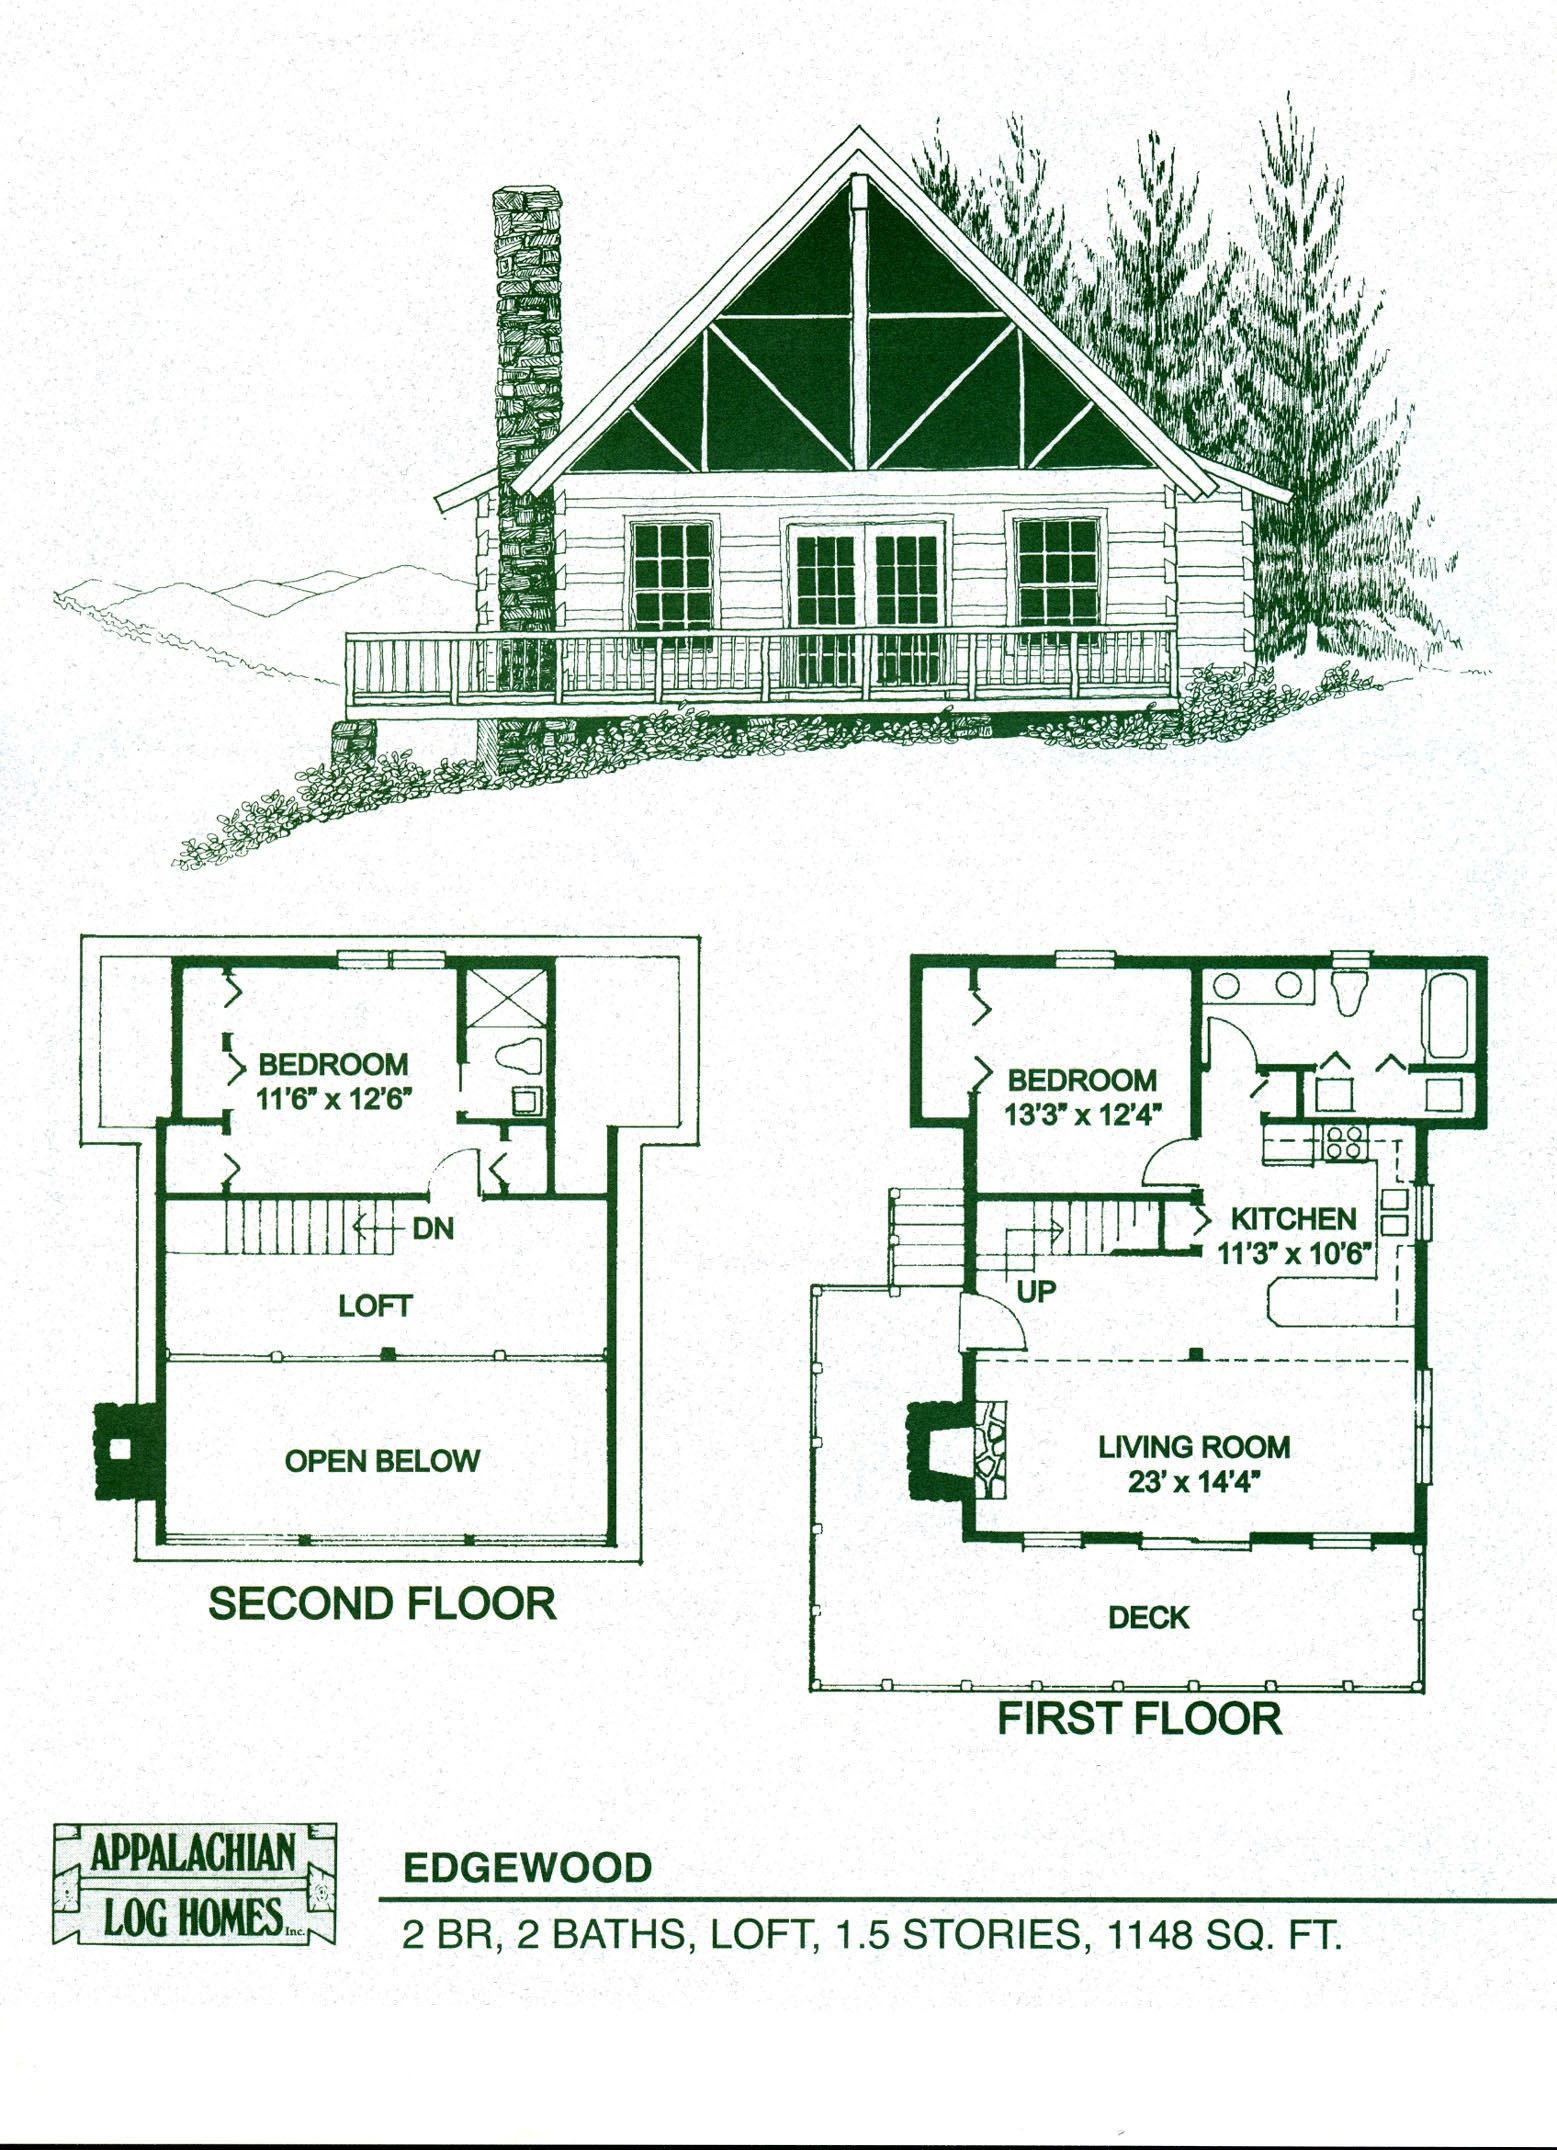 House Plans for Cabins Luxury Simple Log Cabin Drawing at Getdrawings